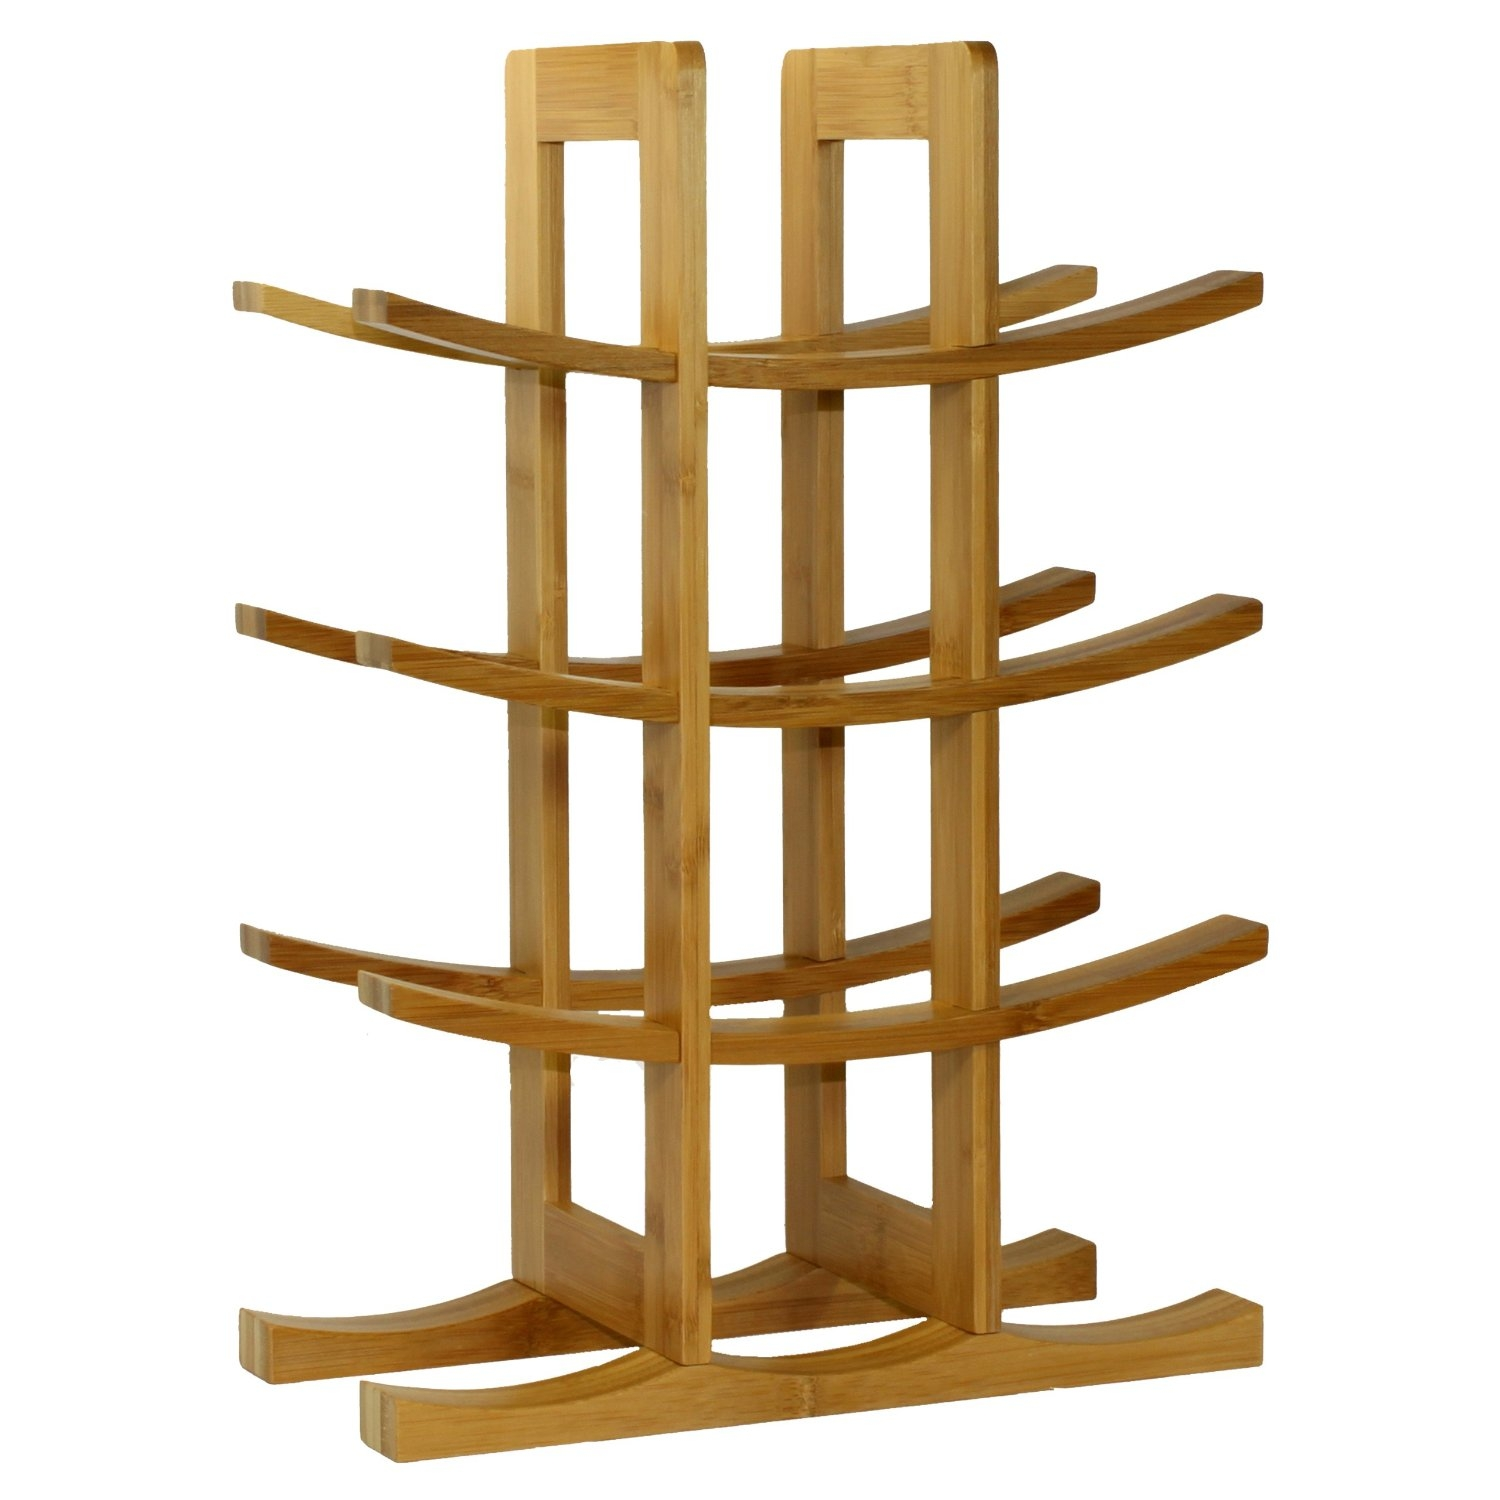 Made with 100% bamboo, this 12-Bottle Wine Rack Modern Asian Style in Natural Bamboo is the ideal fit for wine enthusiasts or starters beginning their wine collection. Present this wine rack to someone special or as a wonderful housewarming and Christmas gift. Its modern design is the perfect complement to any home and counter top. Your house guests will surely be impressed by the beautiful display of your collection. Wine bottle is not included.